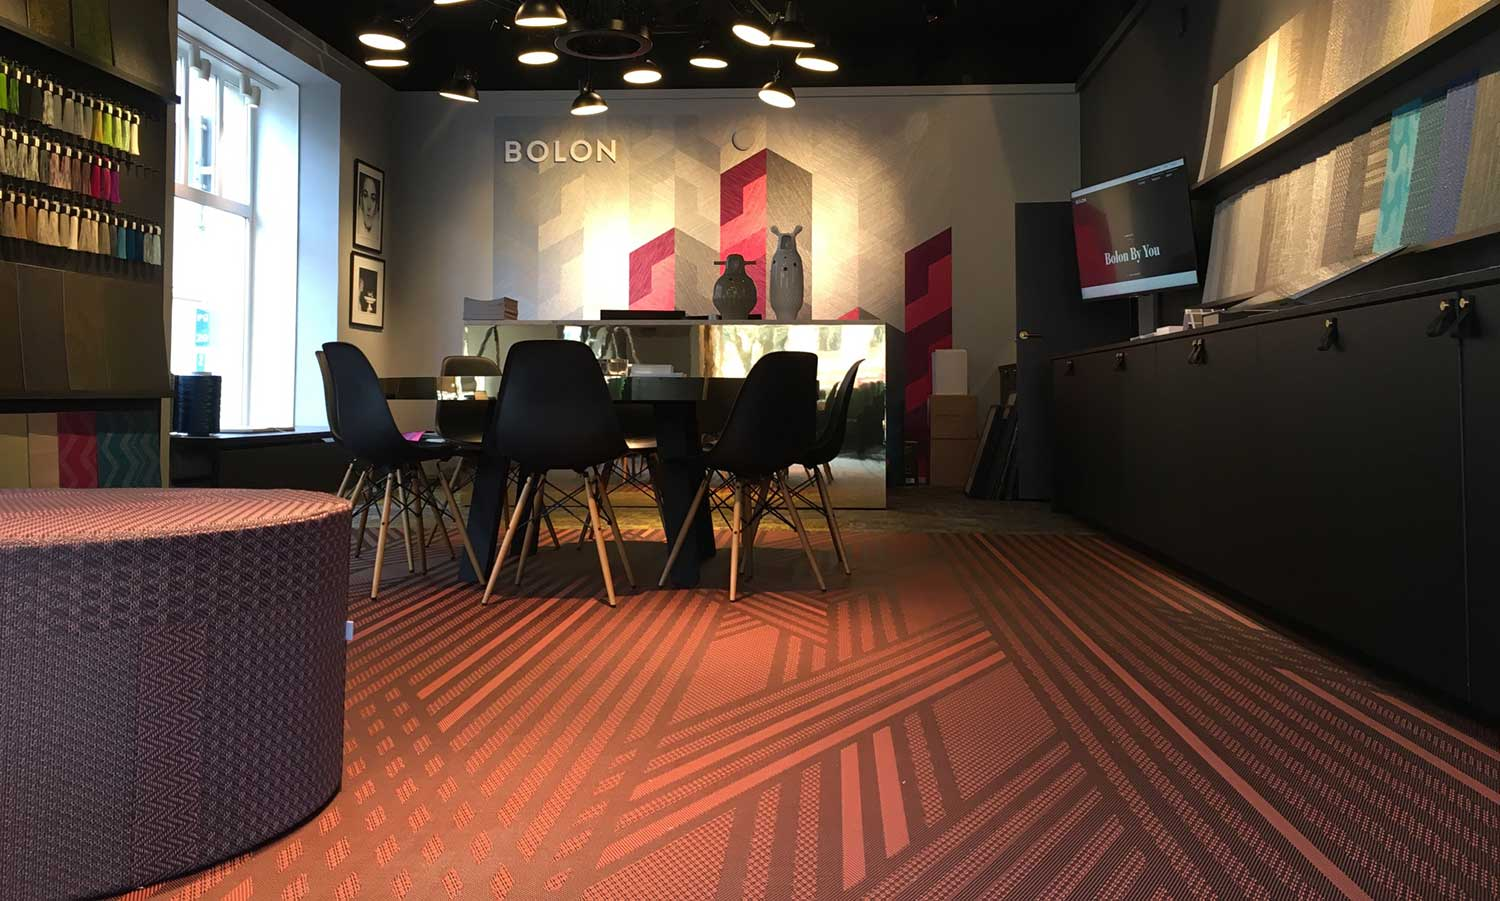 Red and Black Bolon By You Stripe flooring in the Bolon Helsinki showroom